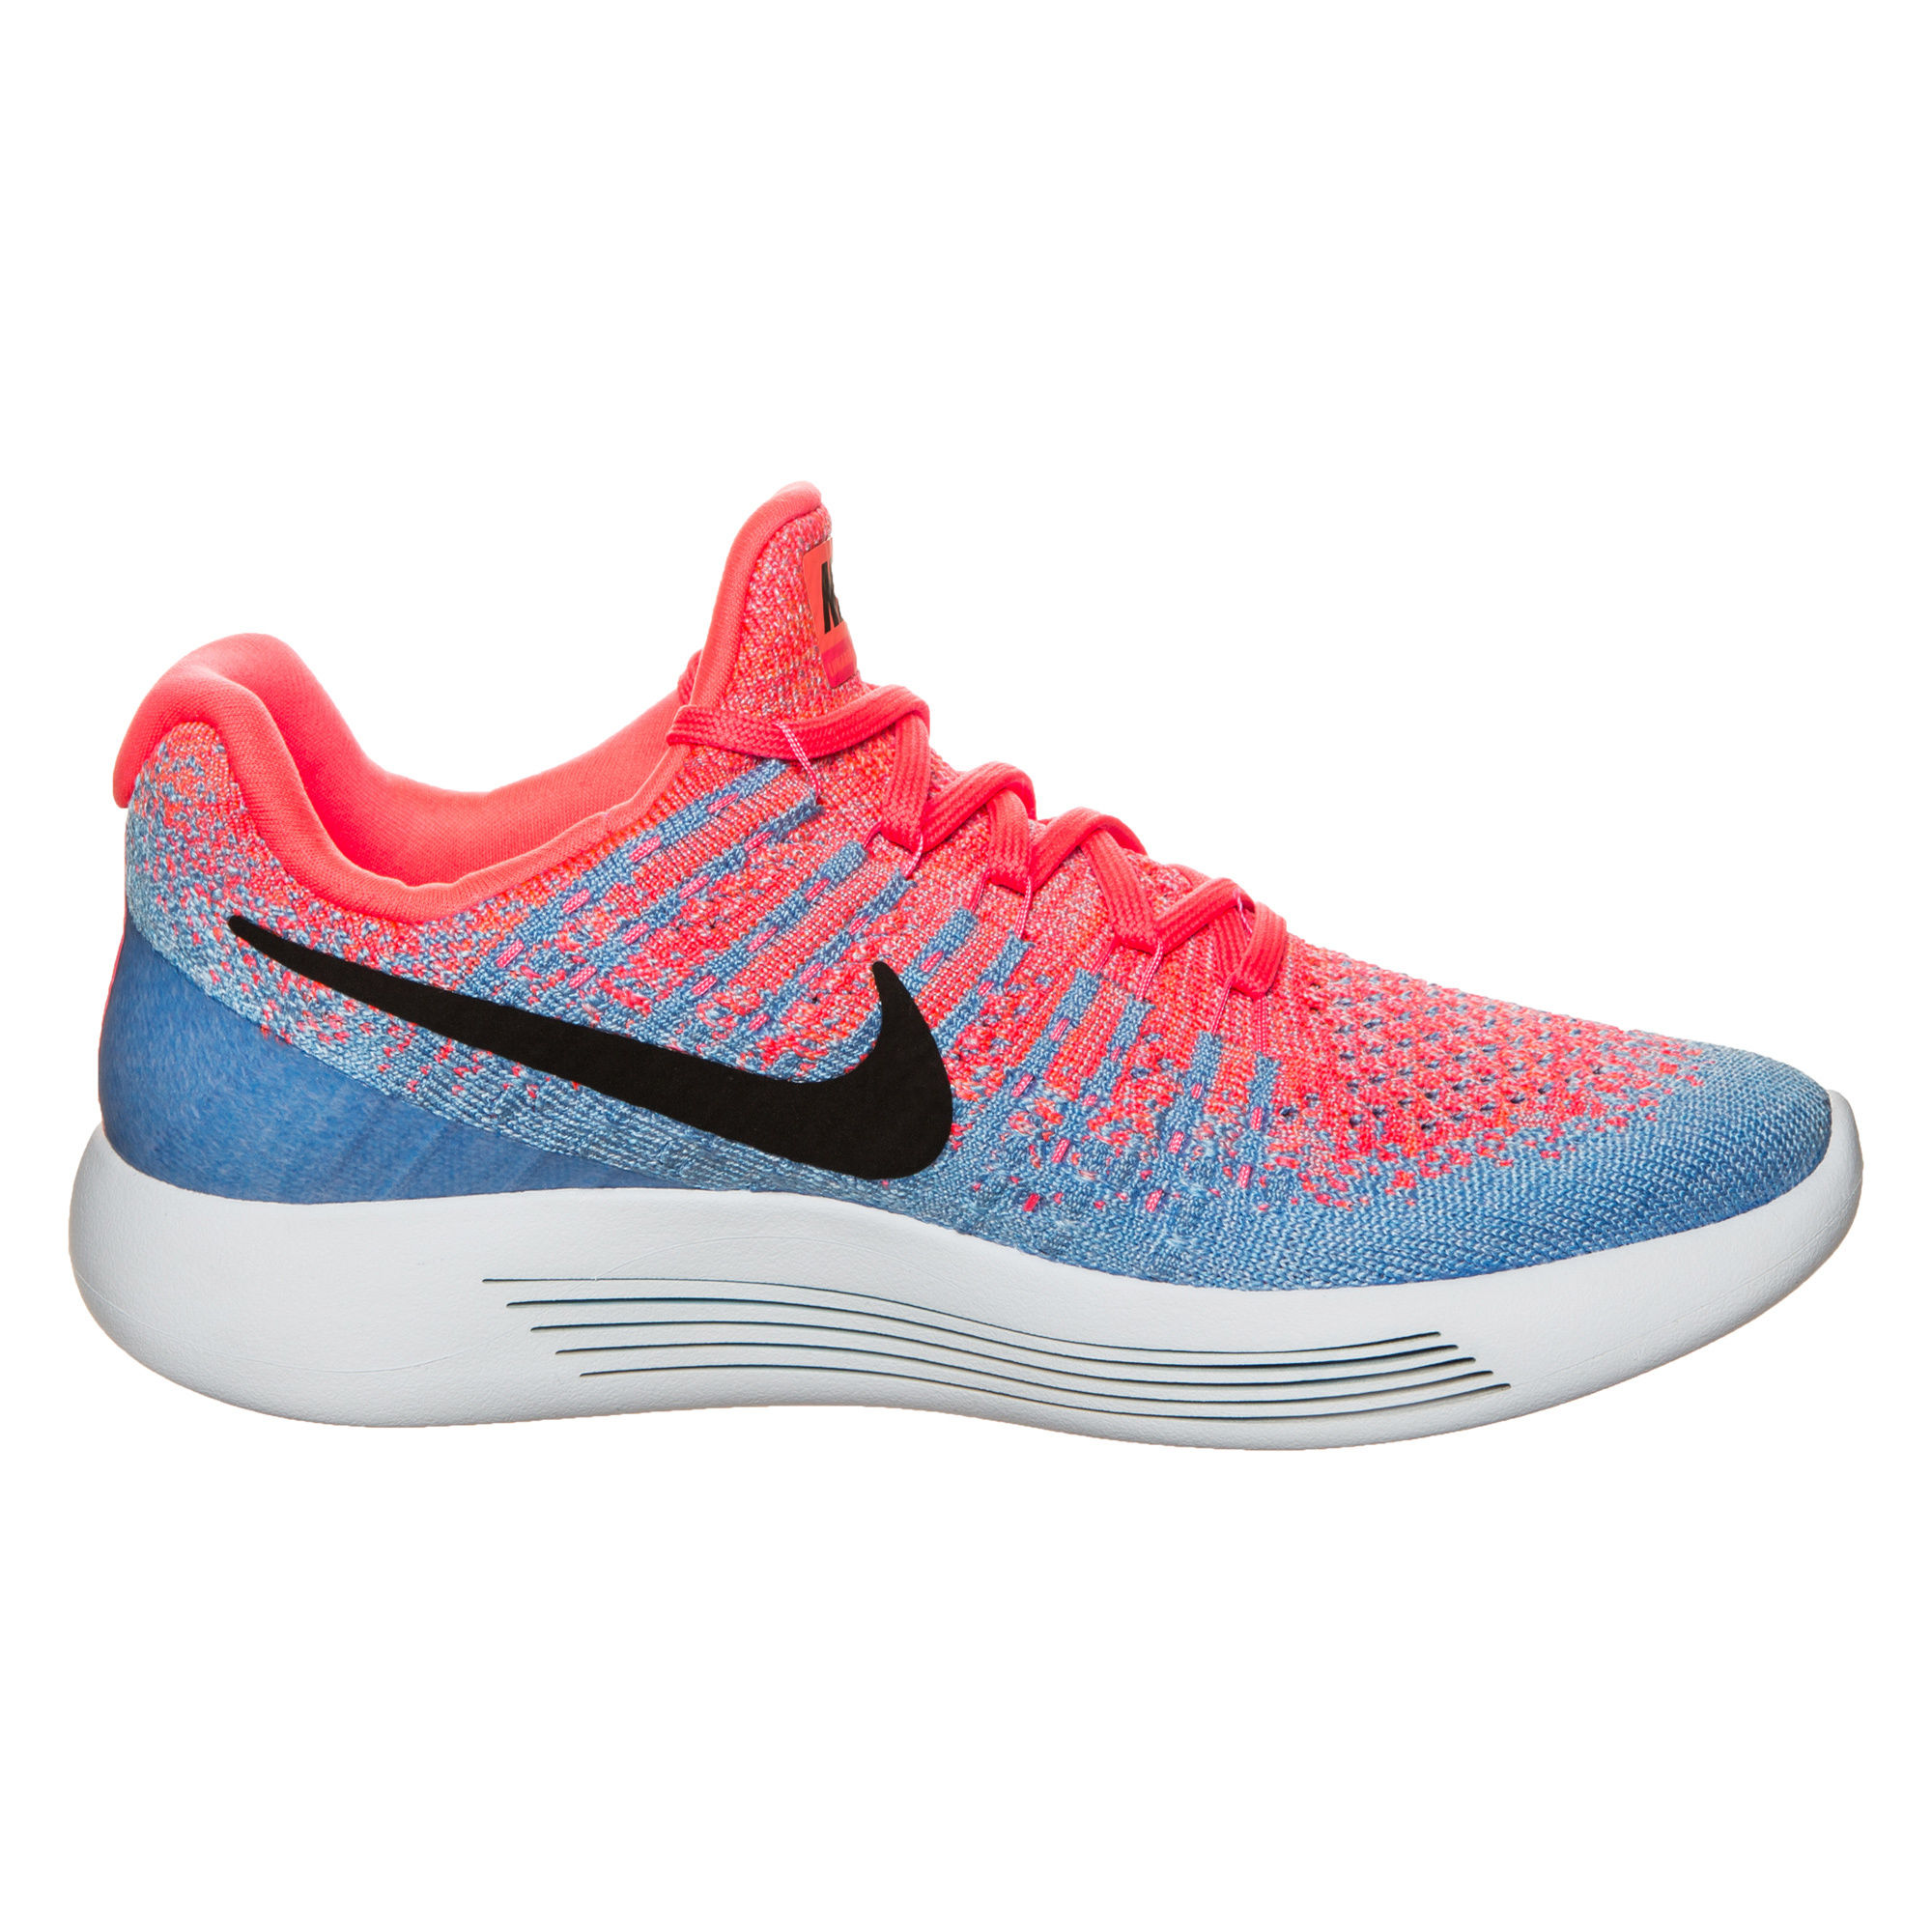 Nike Lady LunarEpic low Flyknit 2 in Blau Pink